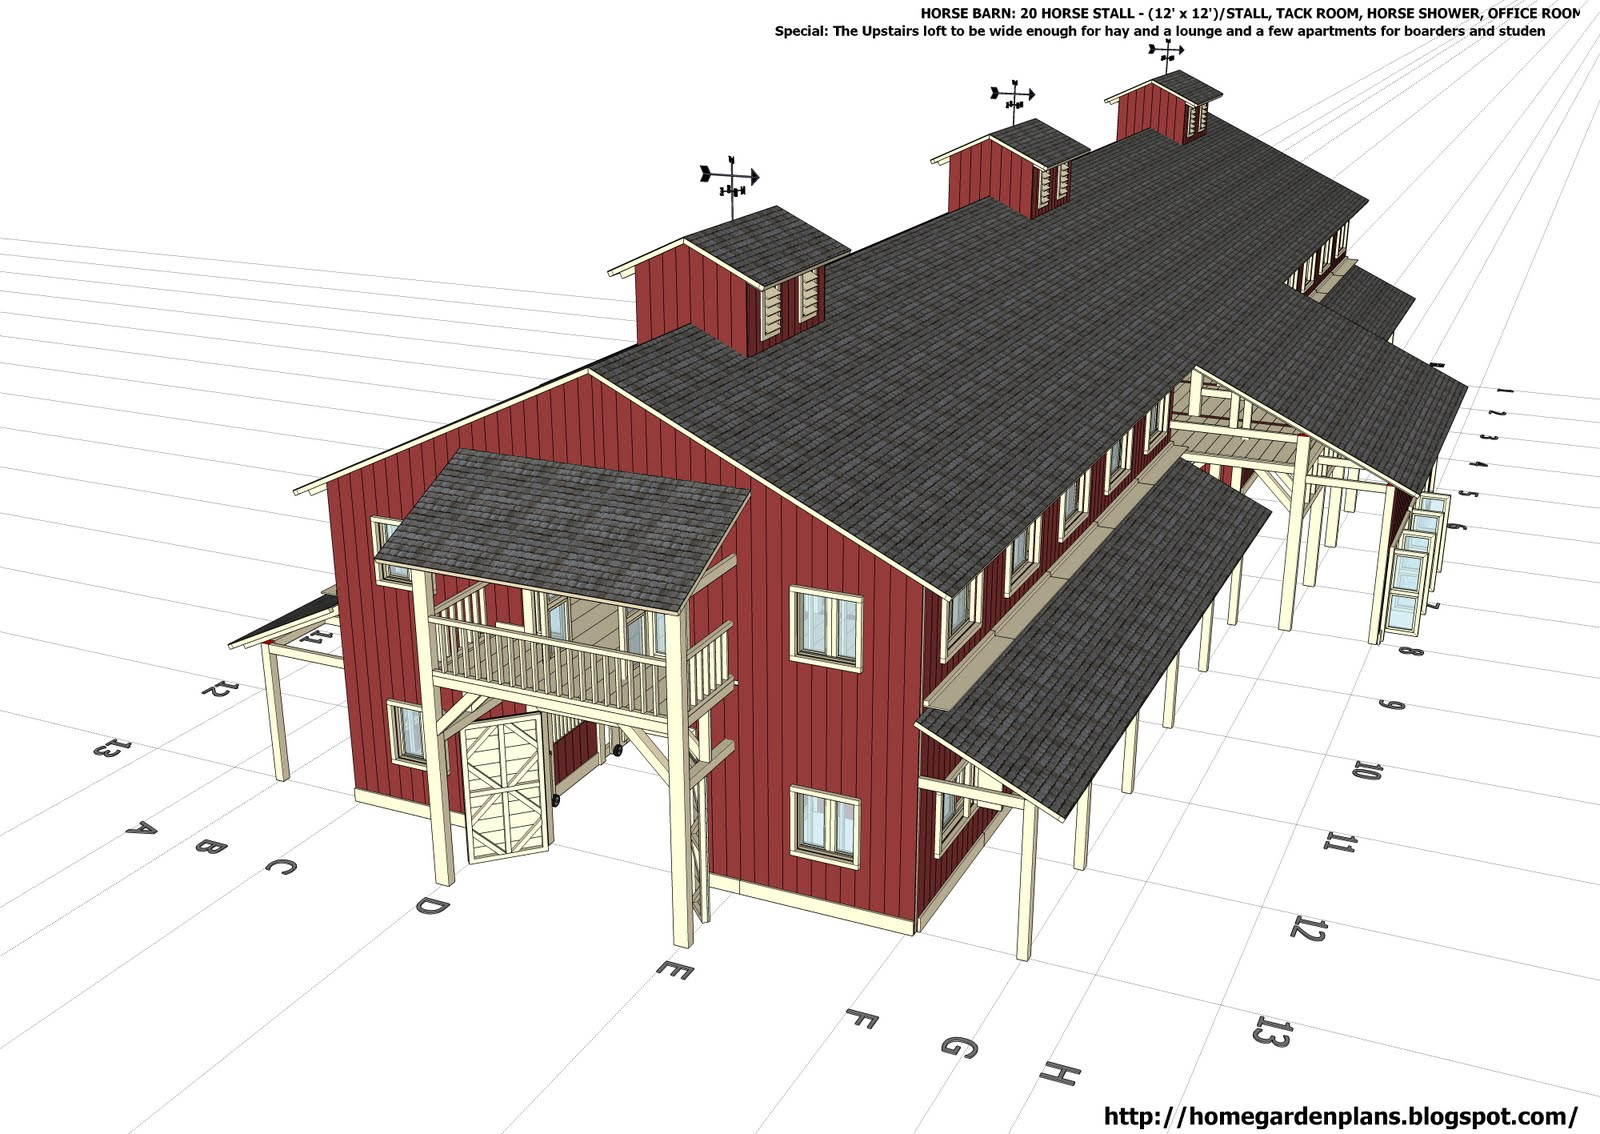 Home garden plans h20b1 20 stall horse barn plans for Barn designs